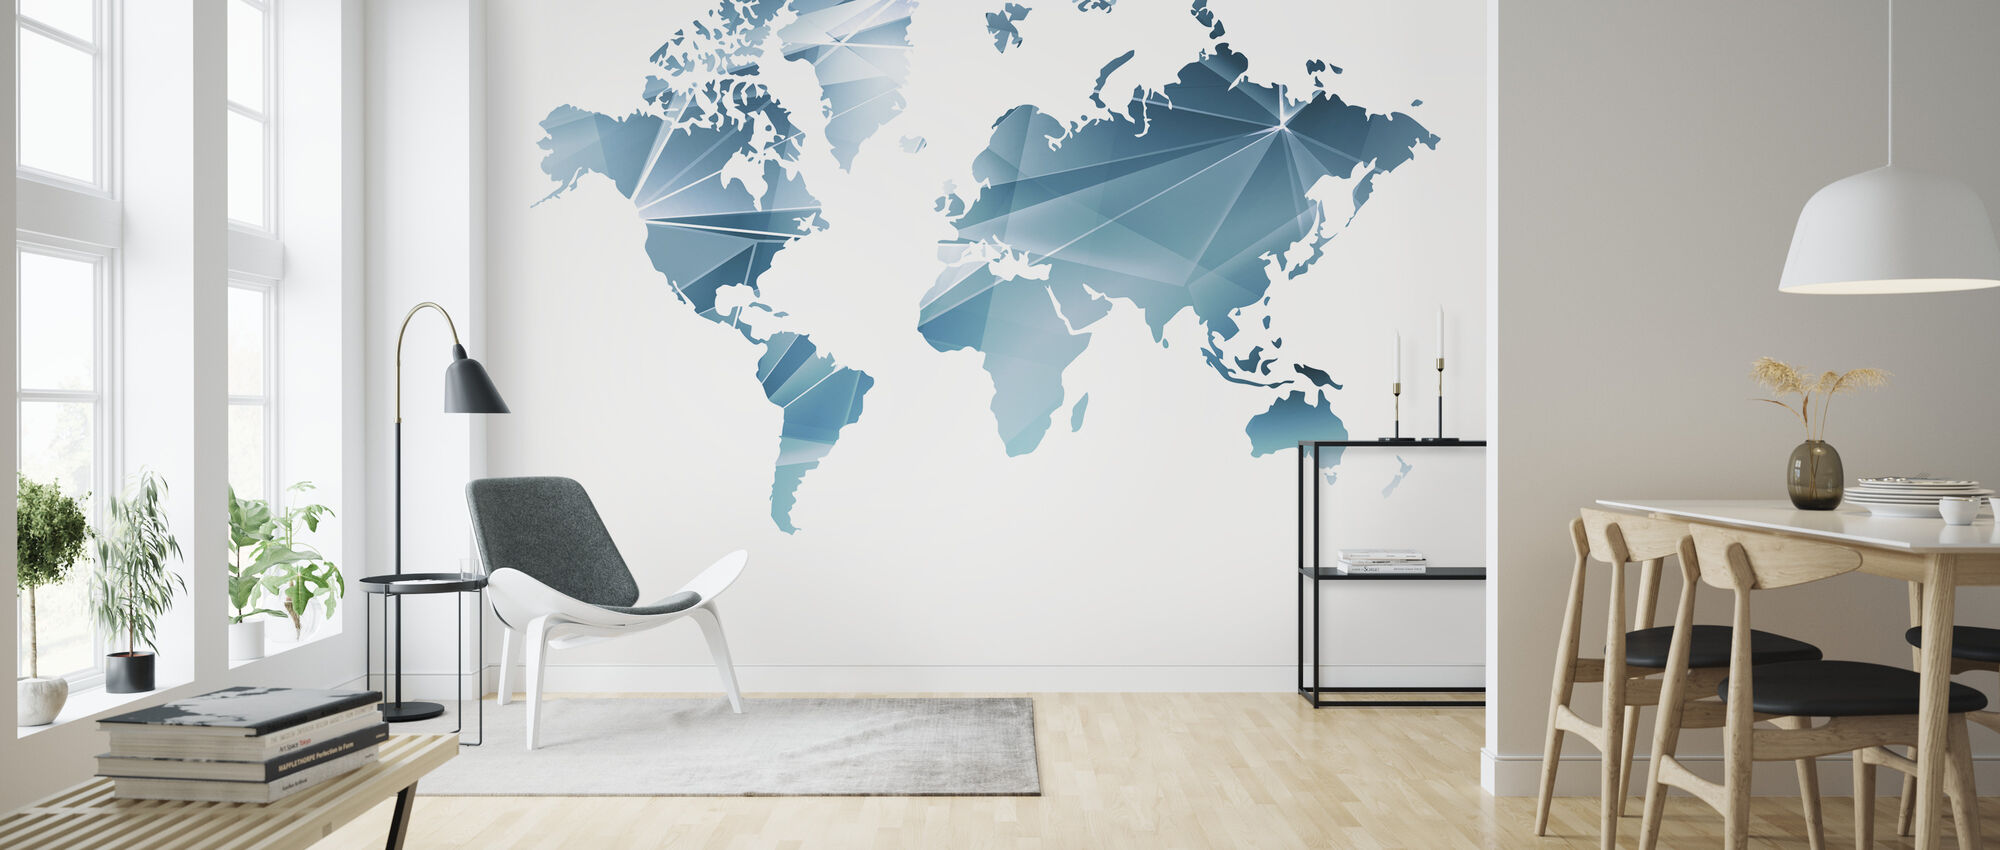 Geometric Concept World Map - Wallpaper - Living Room